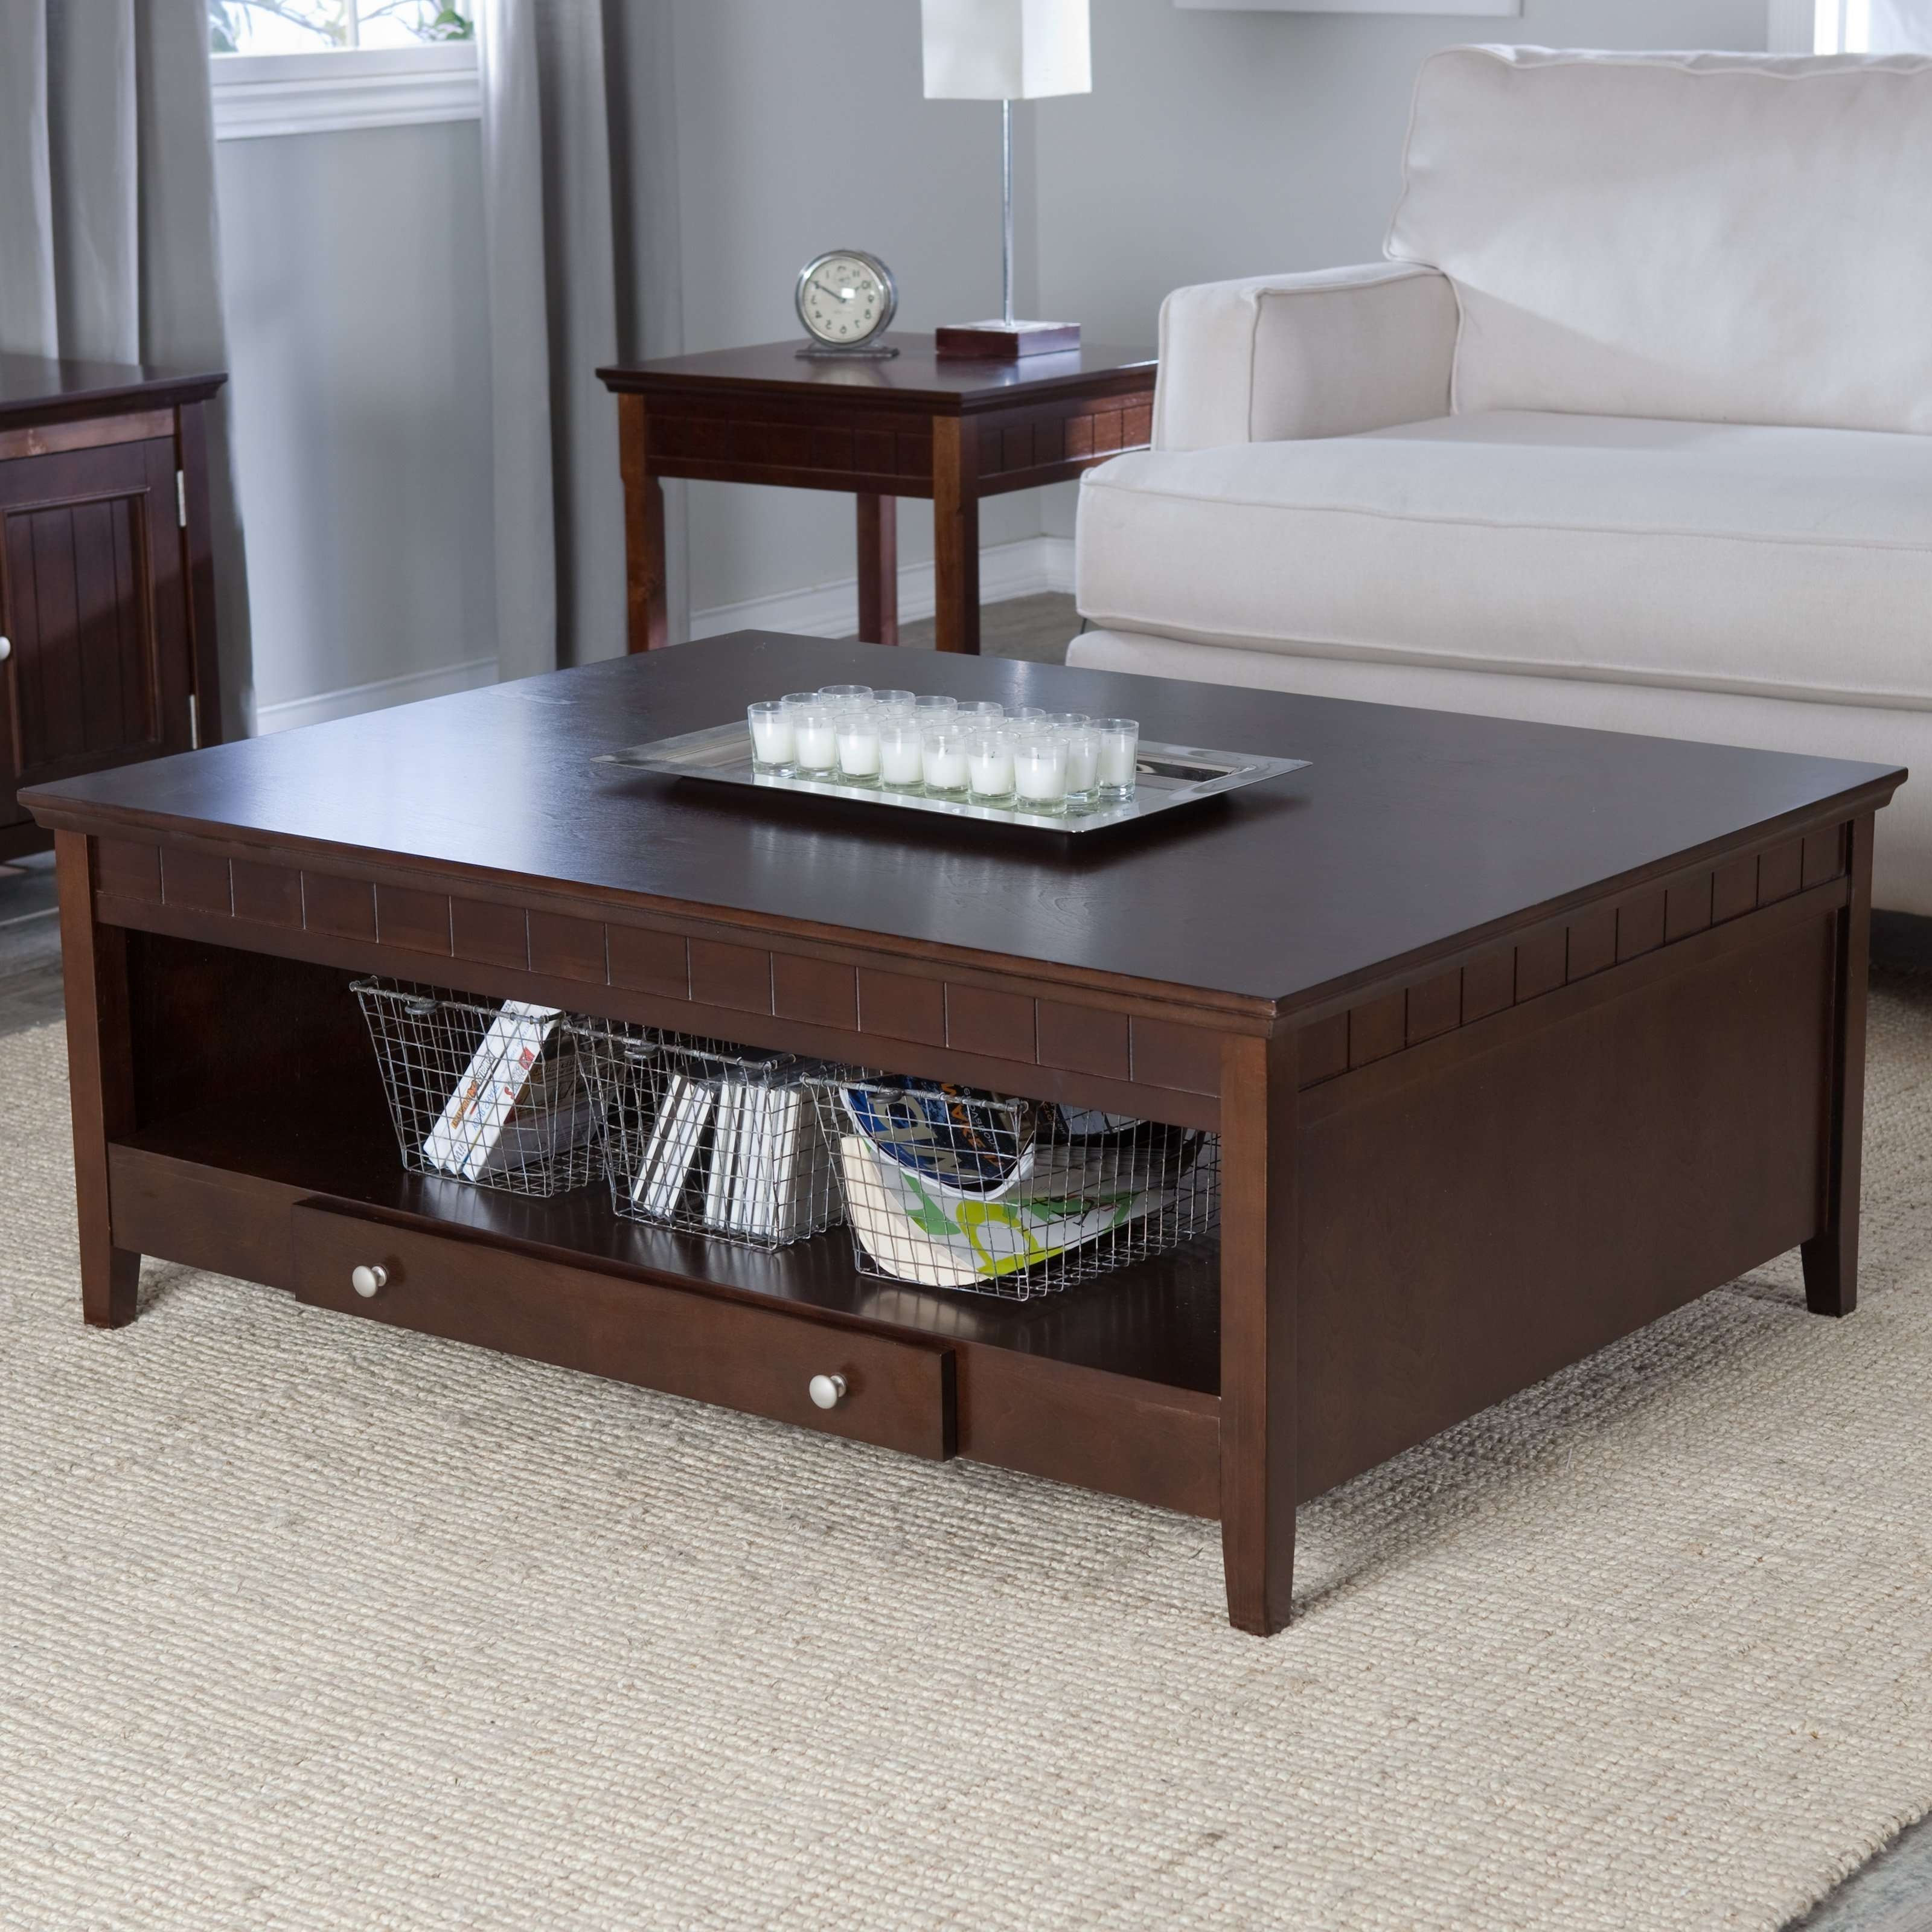 Preferred Coffee Tables With Basket Storage Underneath Regarding Furniture (View 12 of 20)